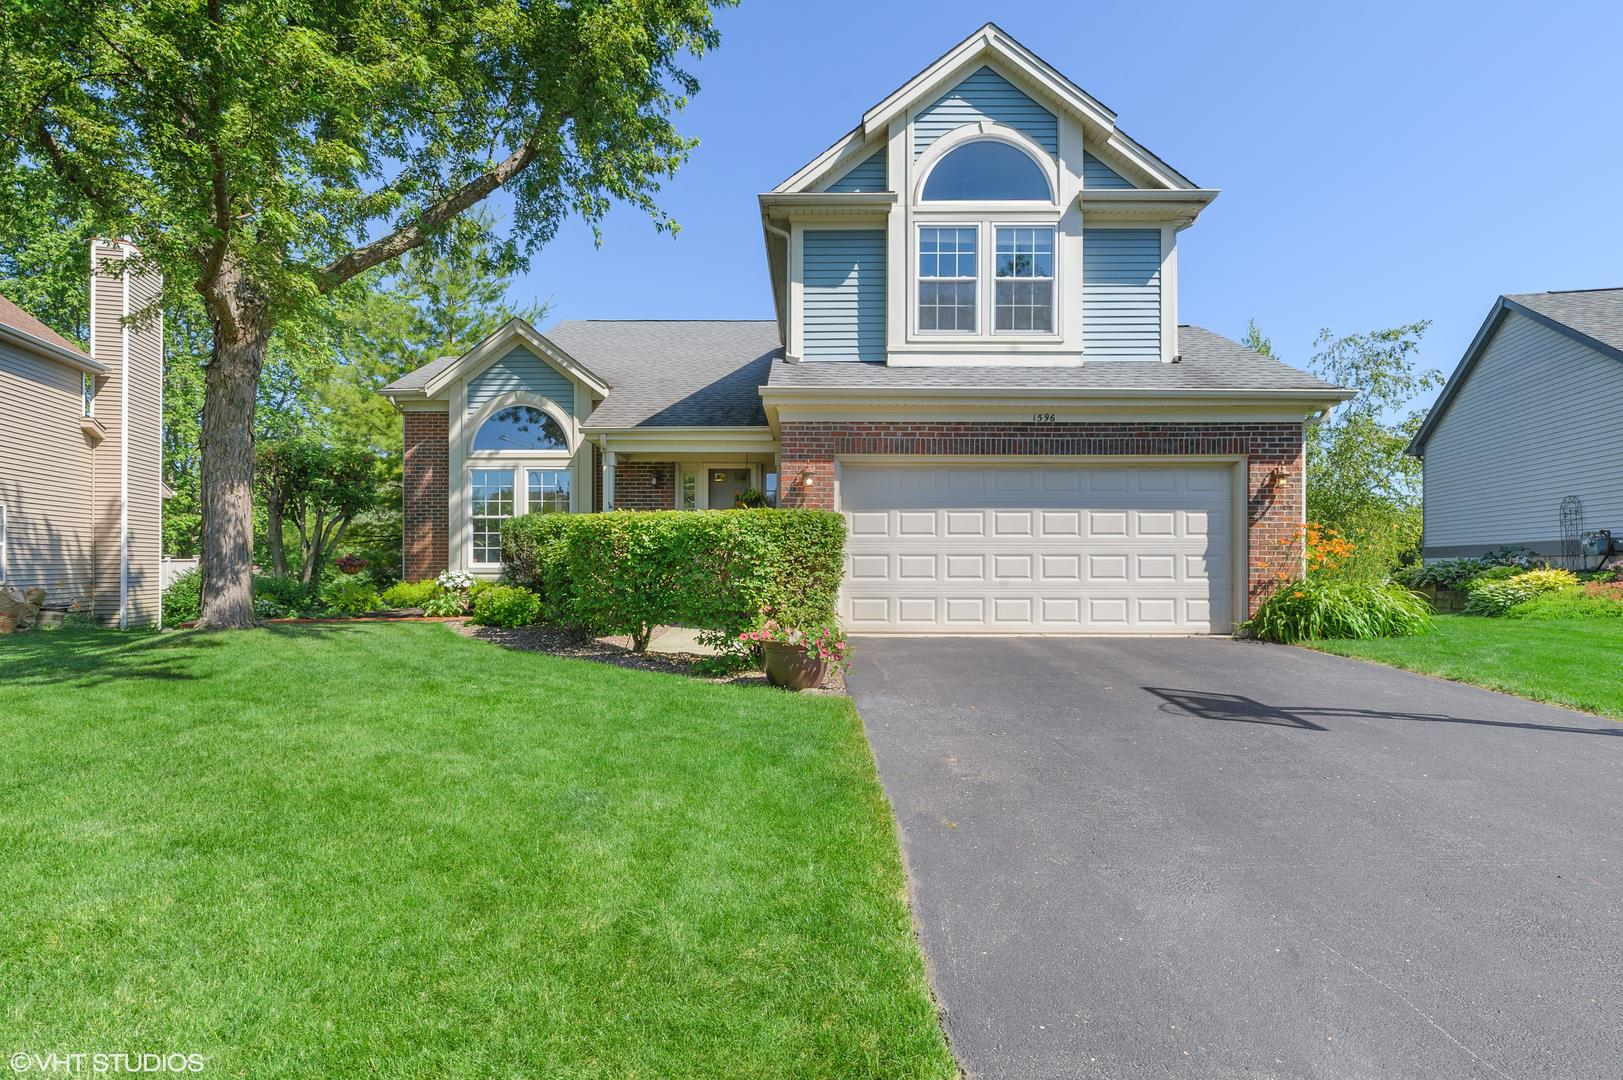 1596 Stockton Lane, Crystal Lake, IL 60014 - #: 10761185